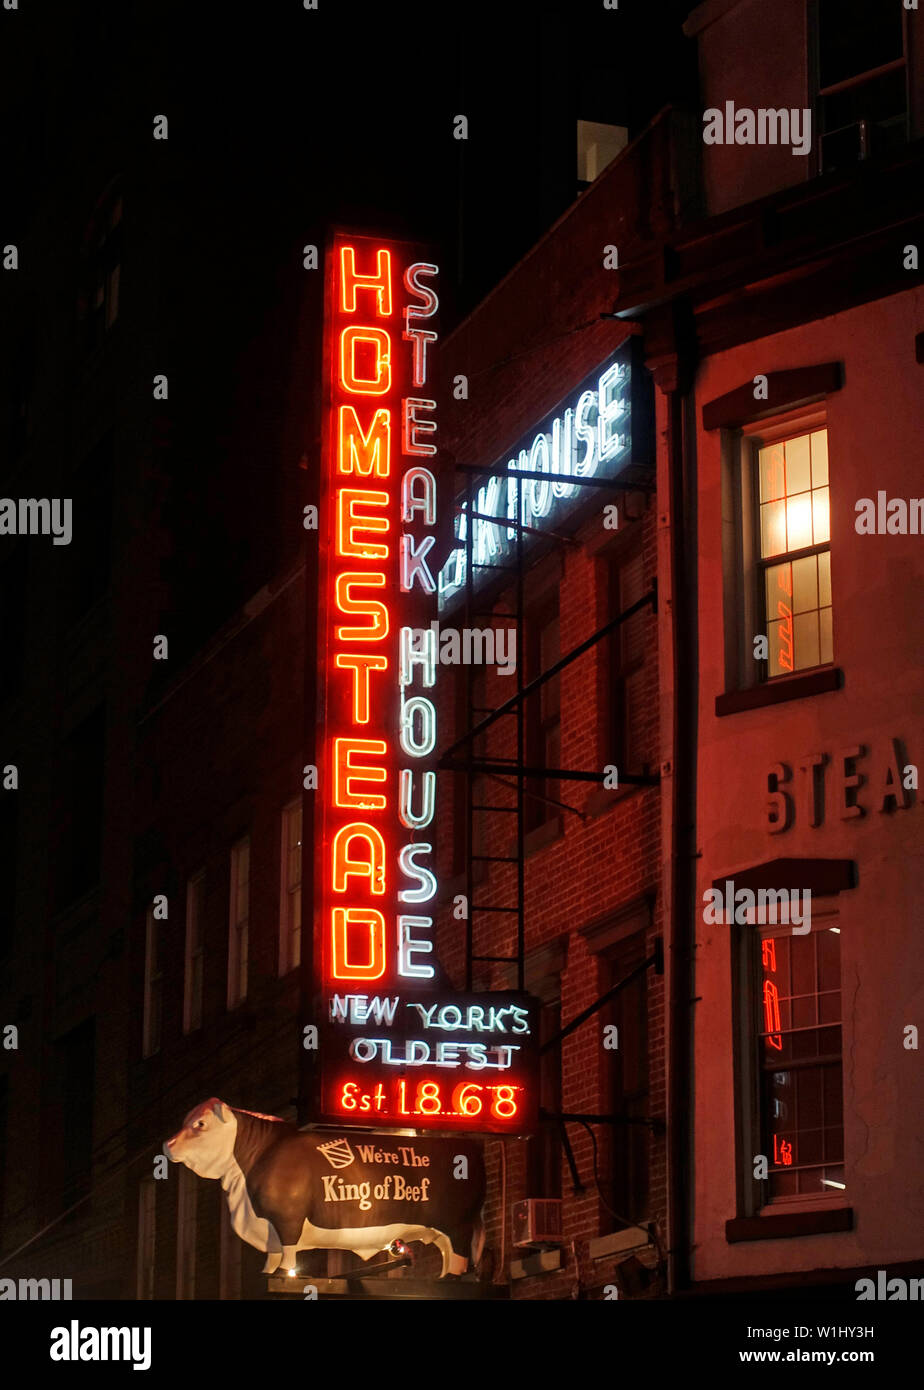 Old Homestead Steakhouse In The Meatpacking District Of Nyc Stock Photo Alamy